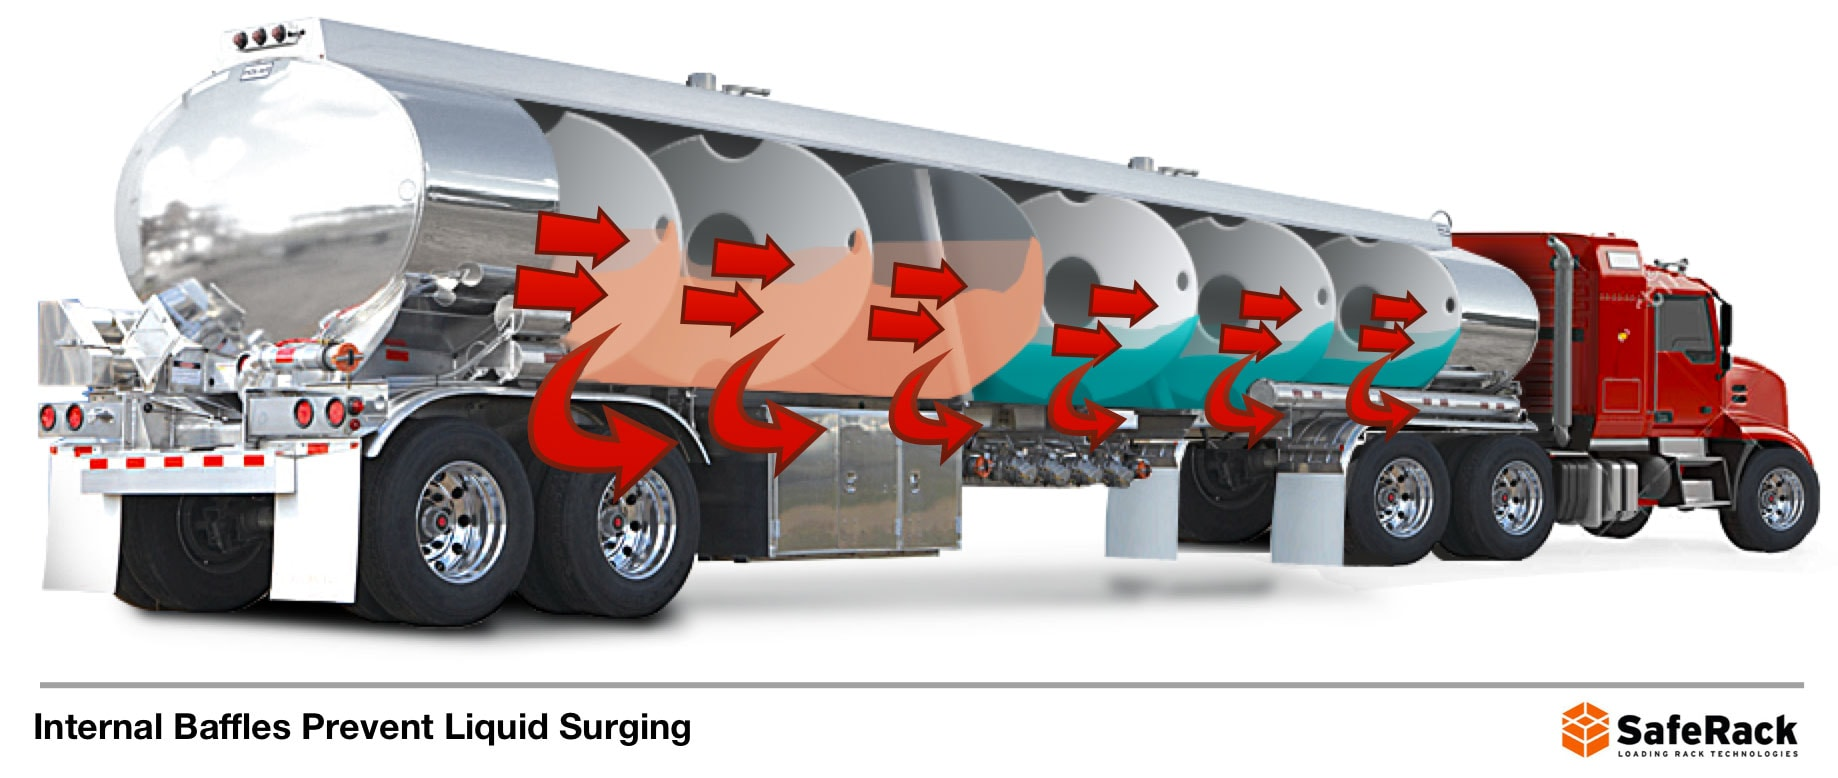 Liquid surges can be prevented with internal baffles